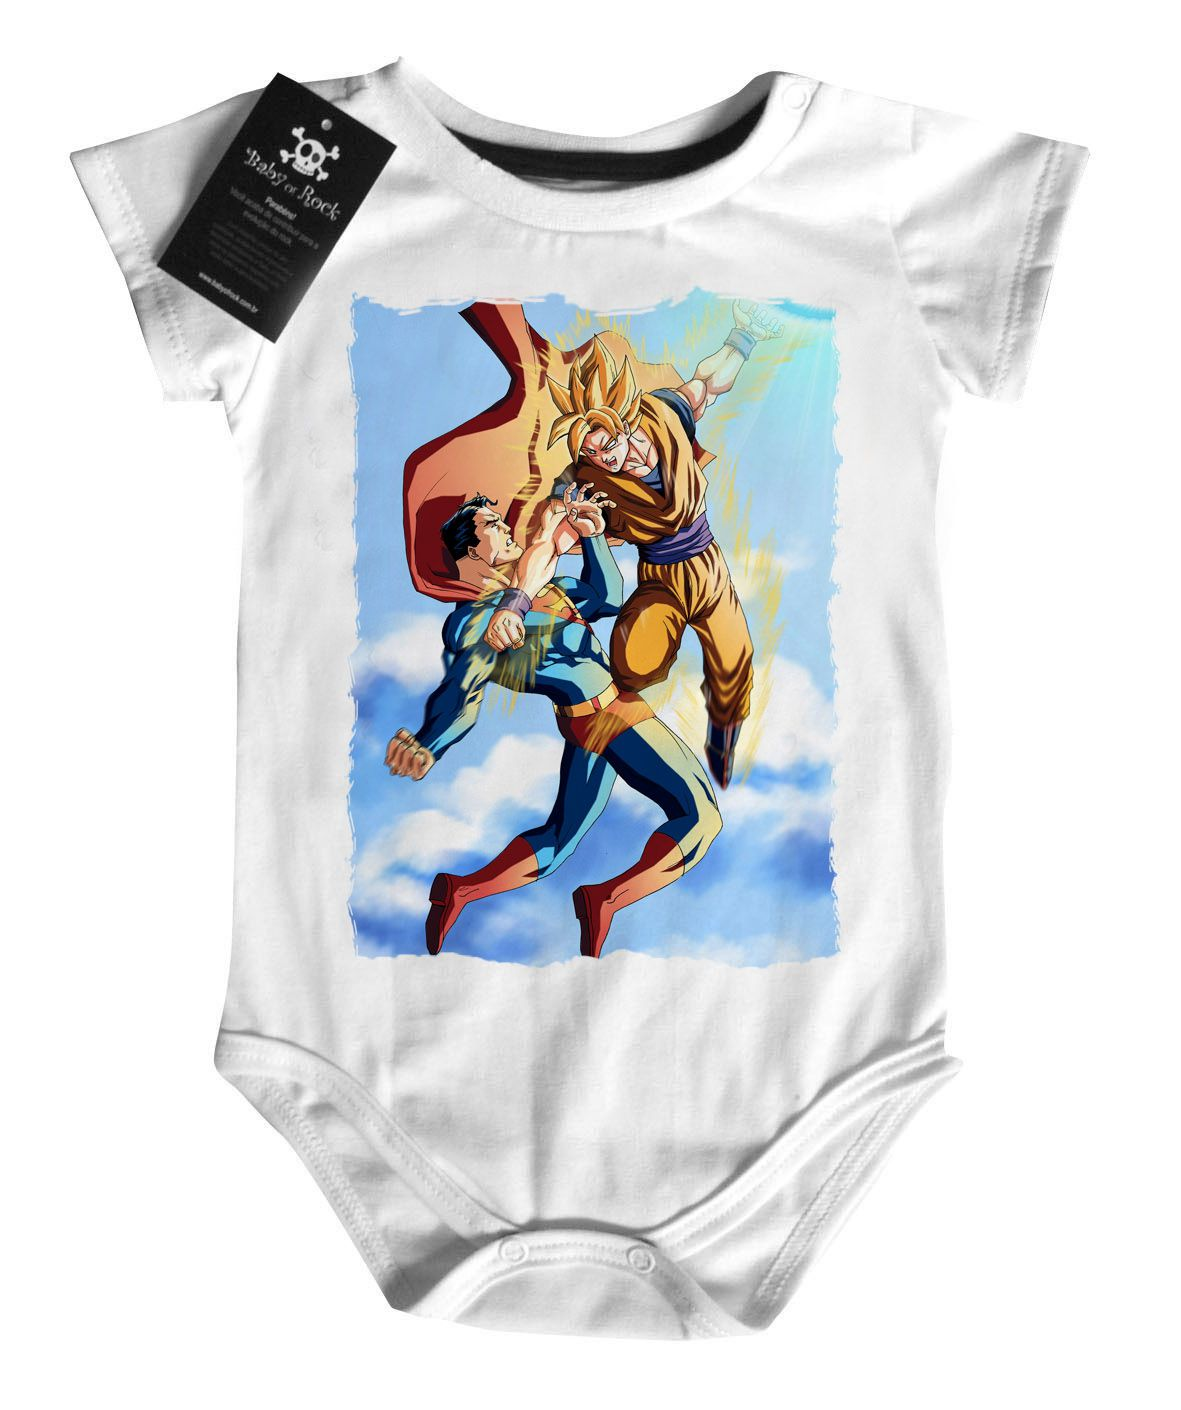 Body  Dragon Ball - Goku vs Super Man - White  - Baby Monster - Body Bebe